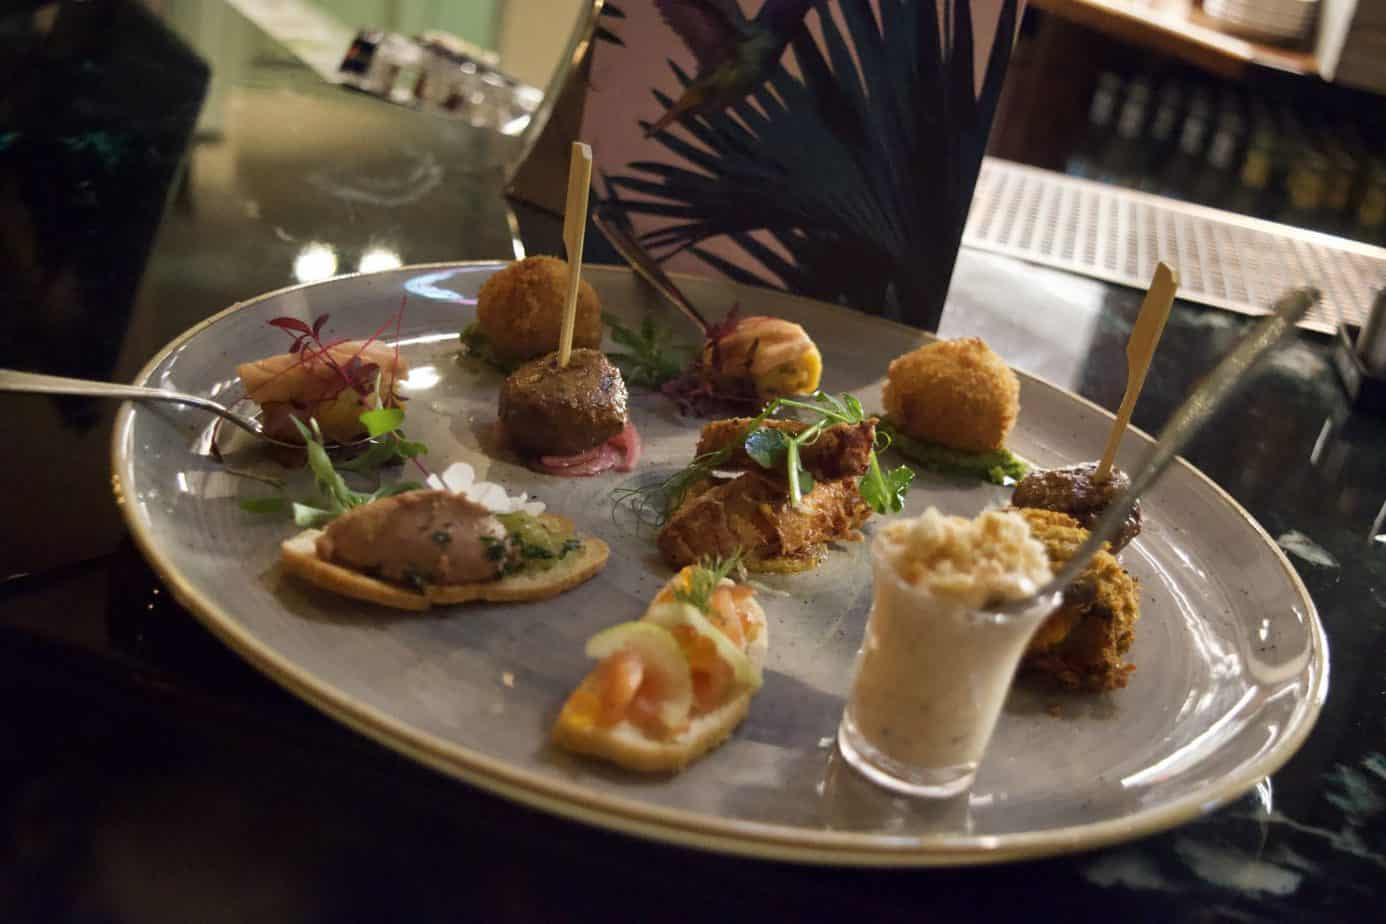 Our plate of canapés including duo liver parfait, falafel, lamb kofta